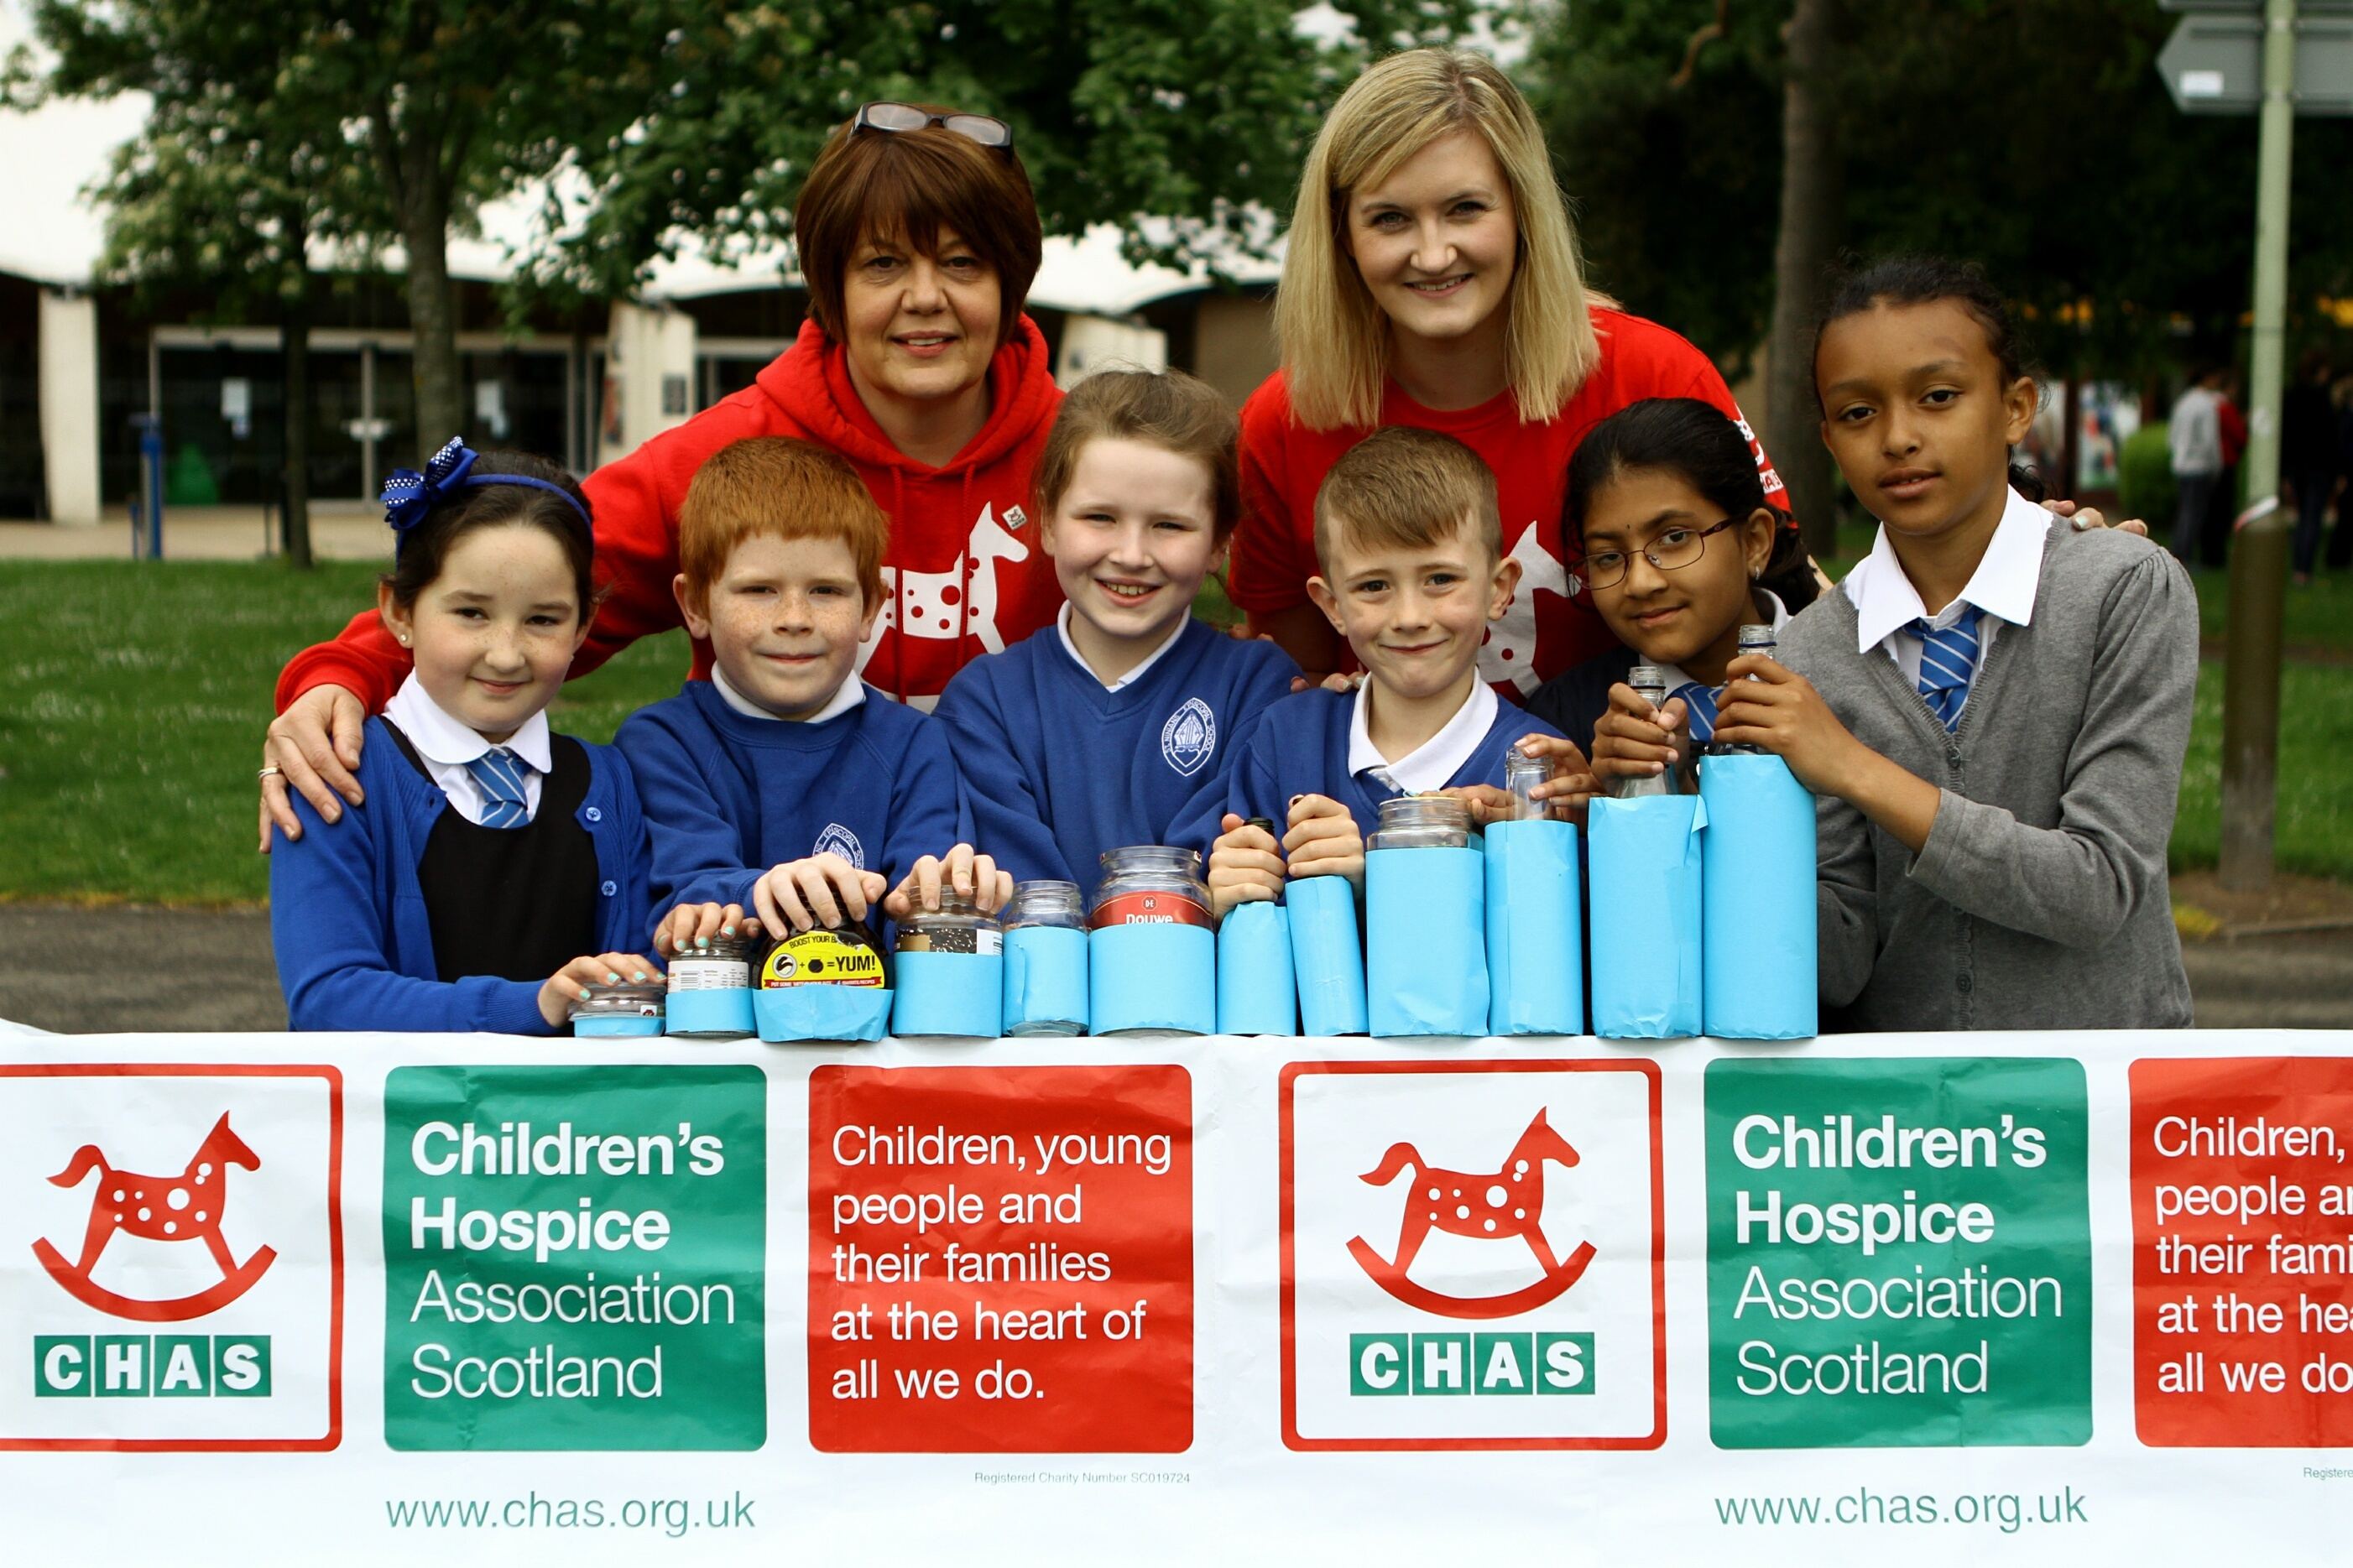 Primary 3/4 pupils from St. Ninian's Episcopal Primary School, Ryley Mitchell, Ethan Hutchison, Sophie Selby-Leslie, Andrew Milne, Sathu Enkahthi and Sarah Bozic with their 'bottle graph' and Alison Rennie and Sarah Dannfeld - community fundraisers with CHAS.